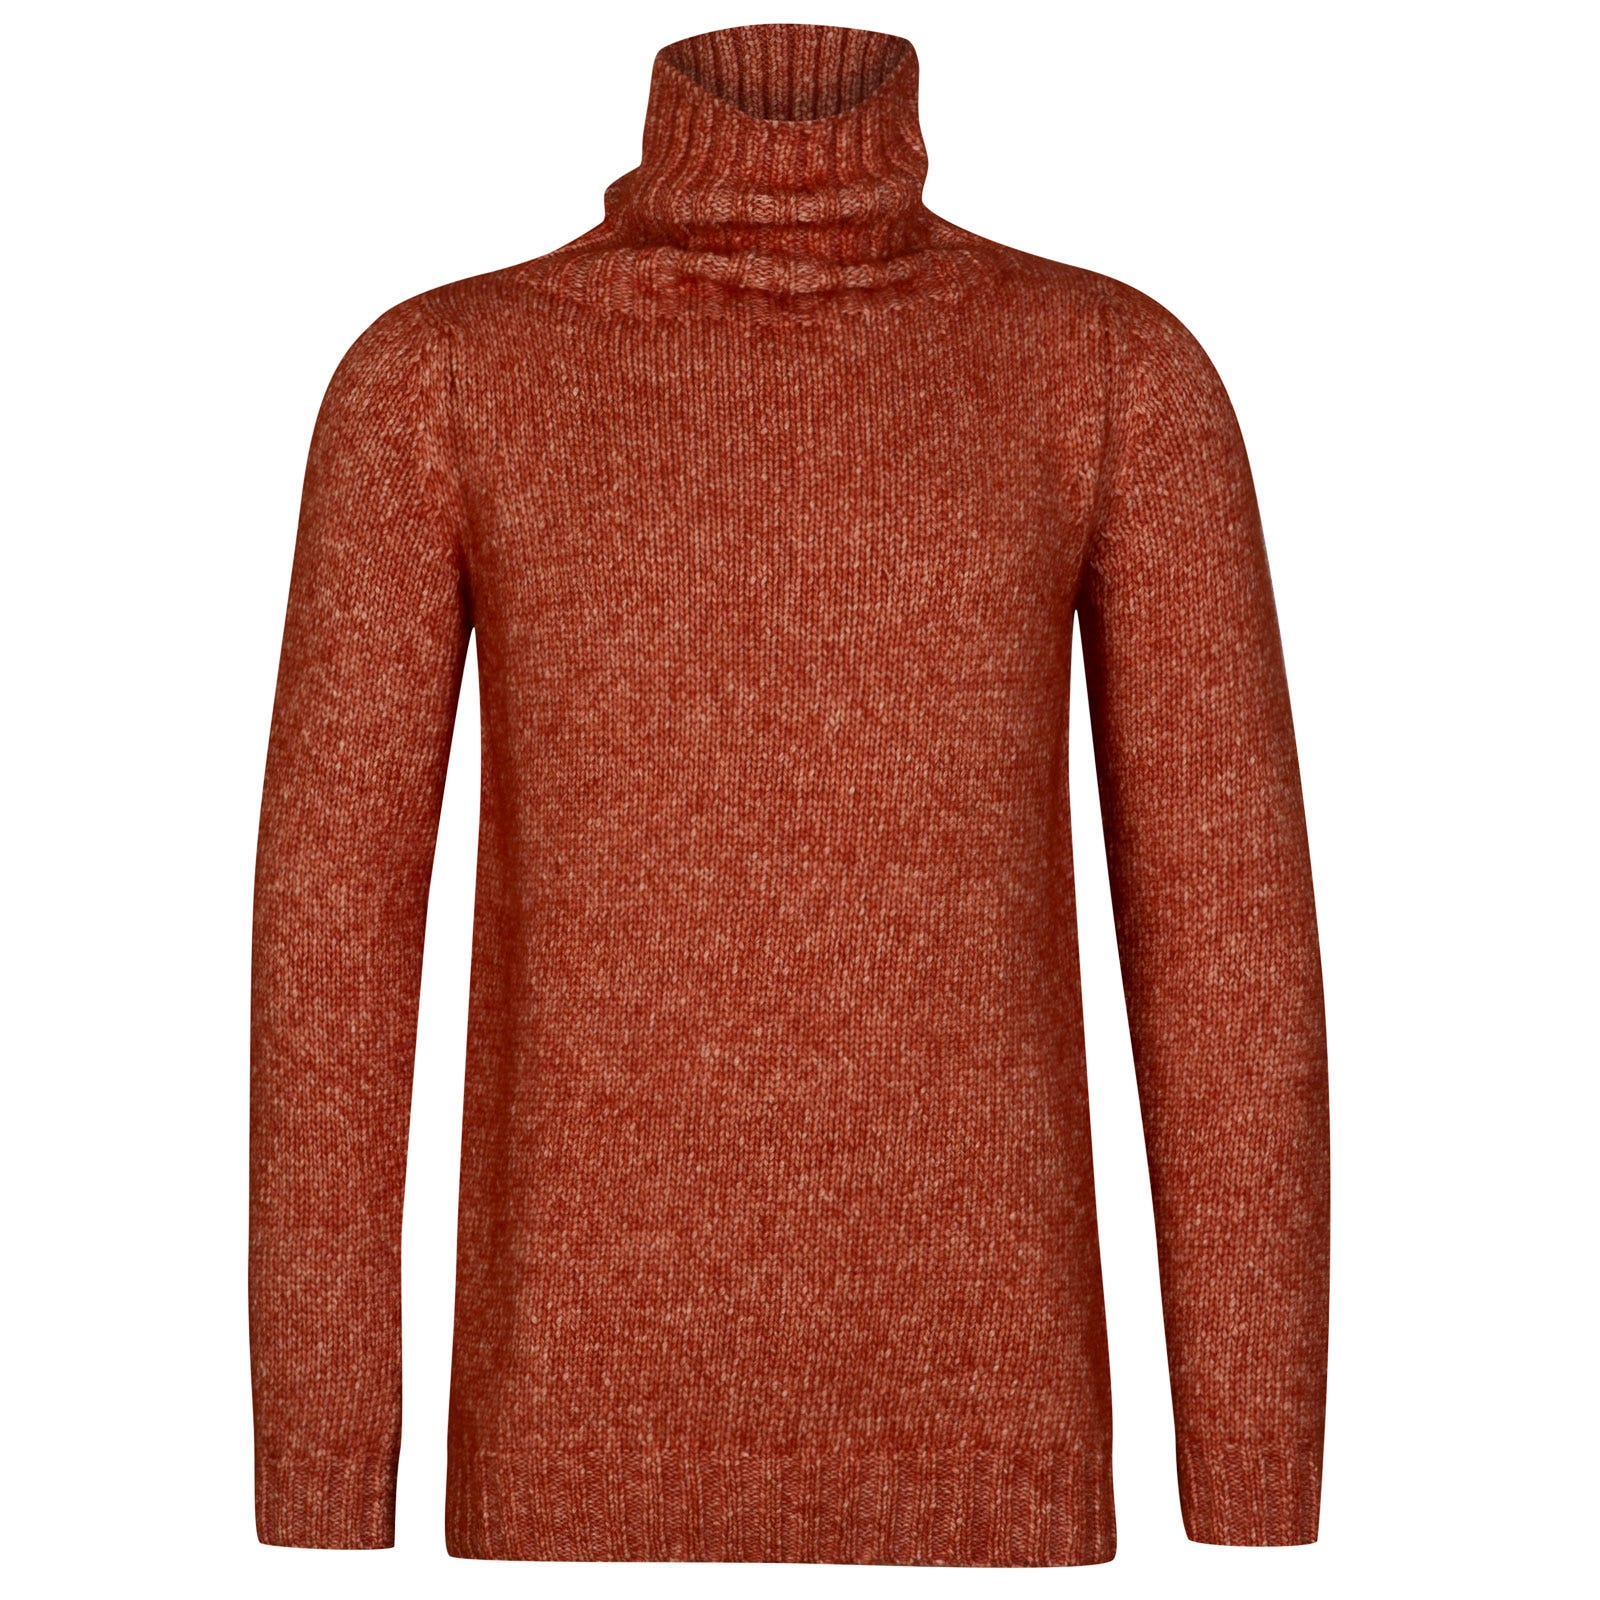 John Smedley kilbreck Alpaca, Wool & Cotton Pullover in Flare Orange-L